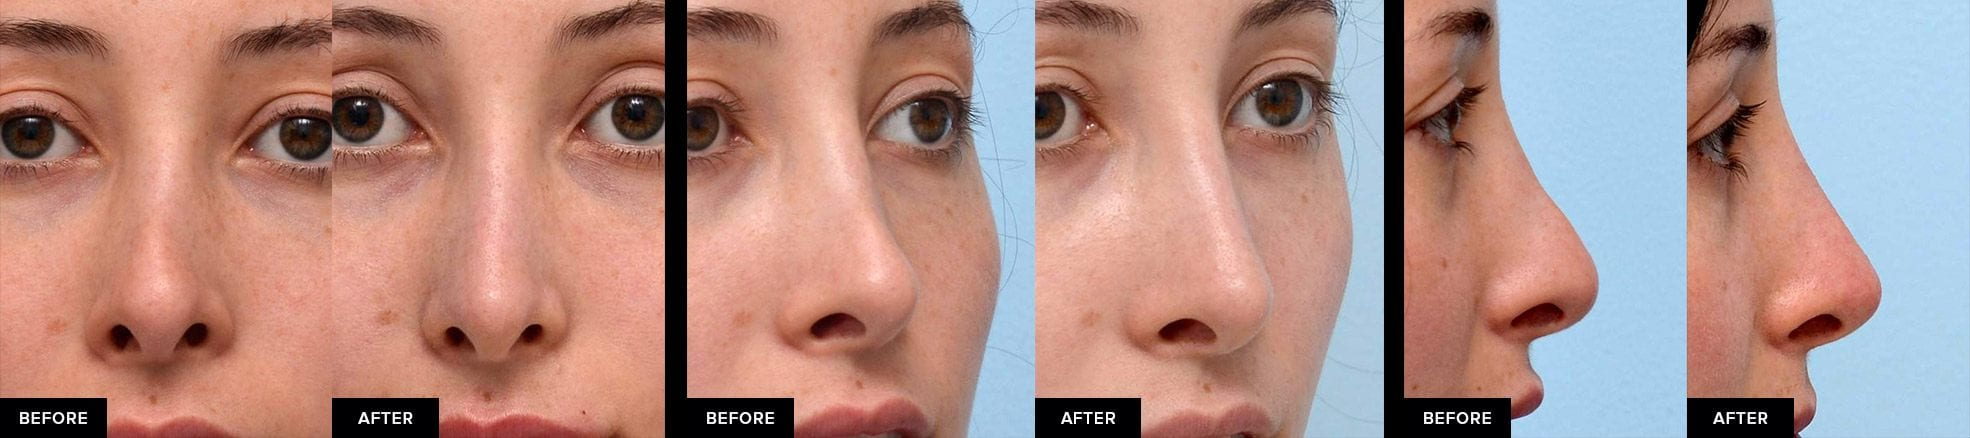 Nonsurgical rhinoplasty before-and-after from 3 perspectives